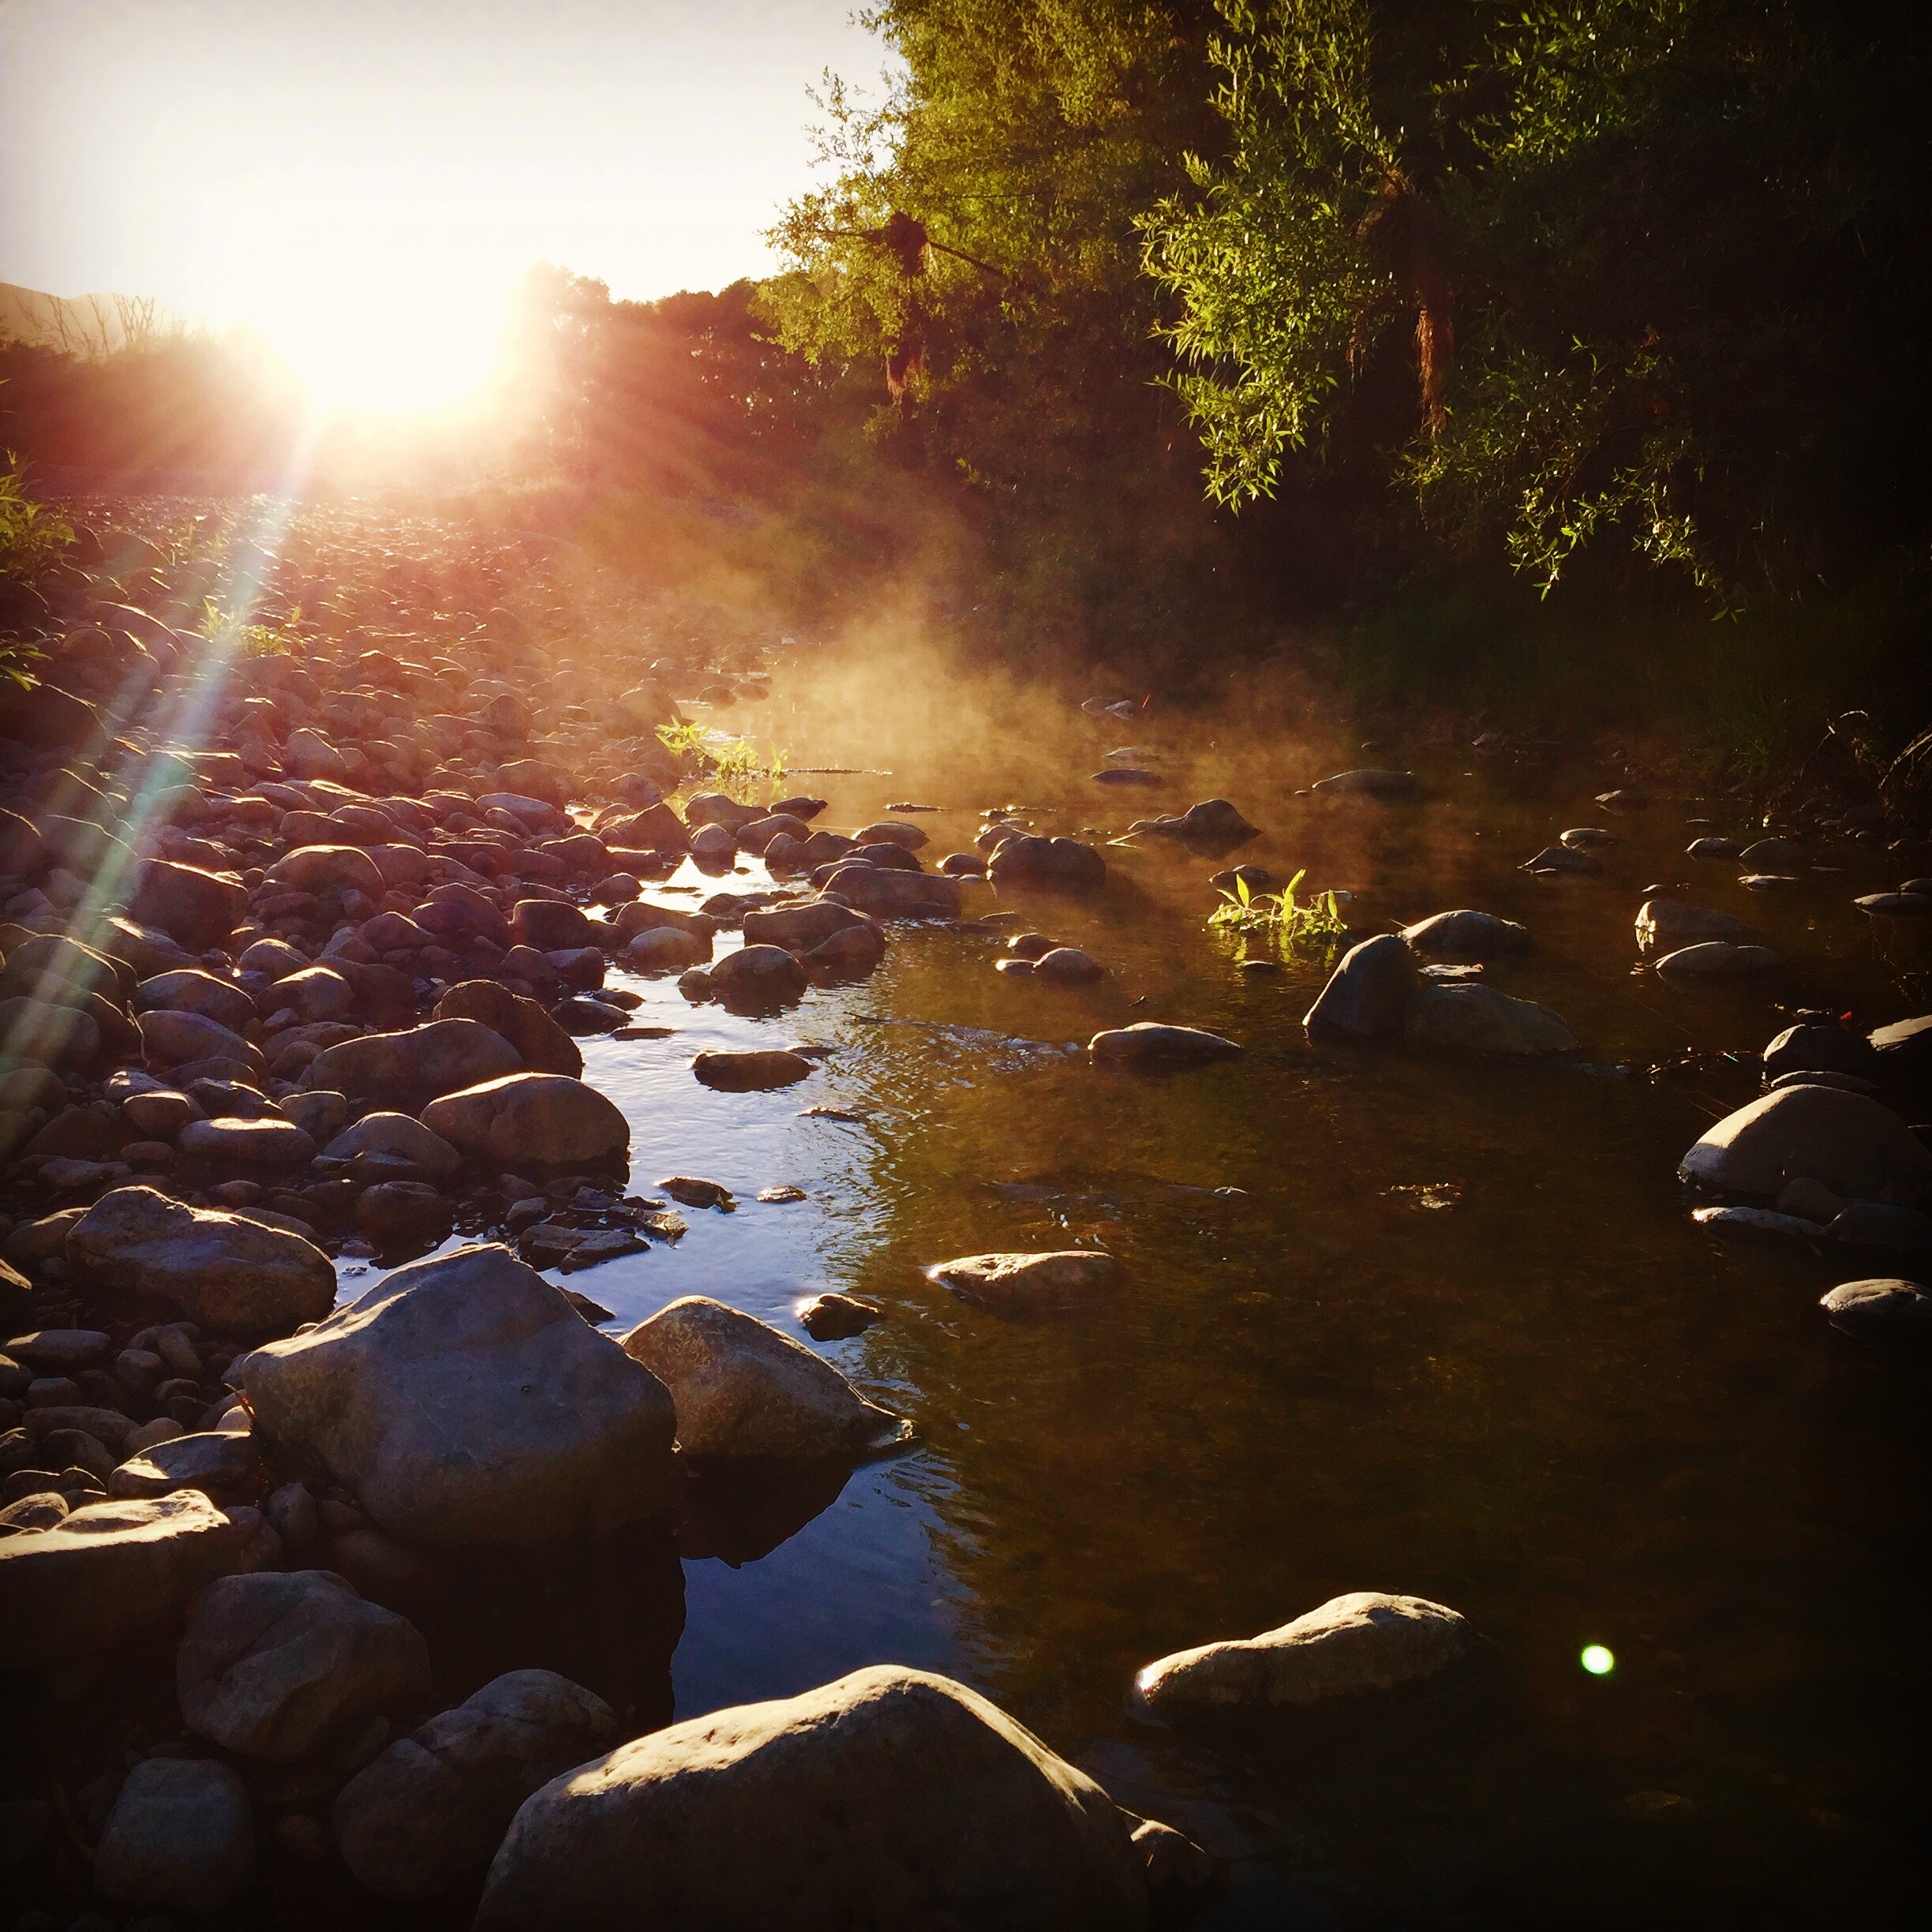 Sunrise at the river